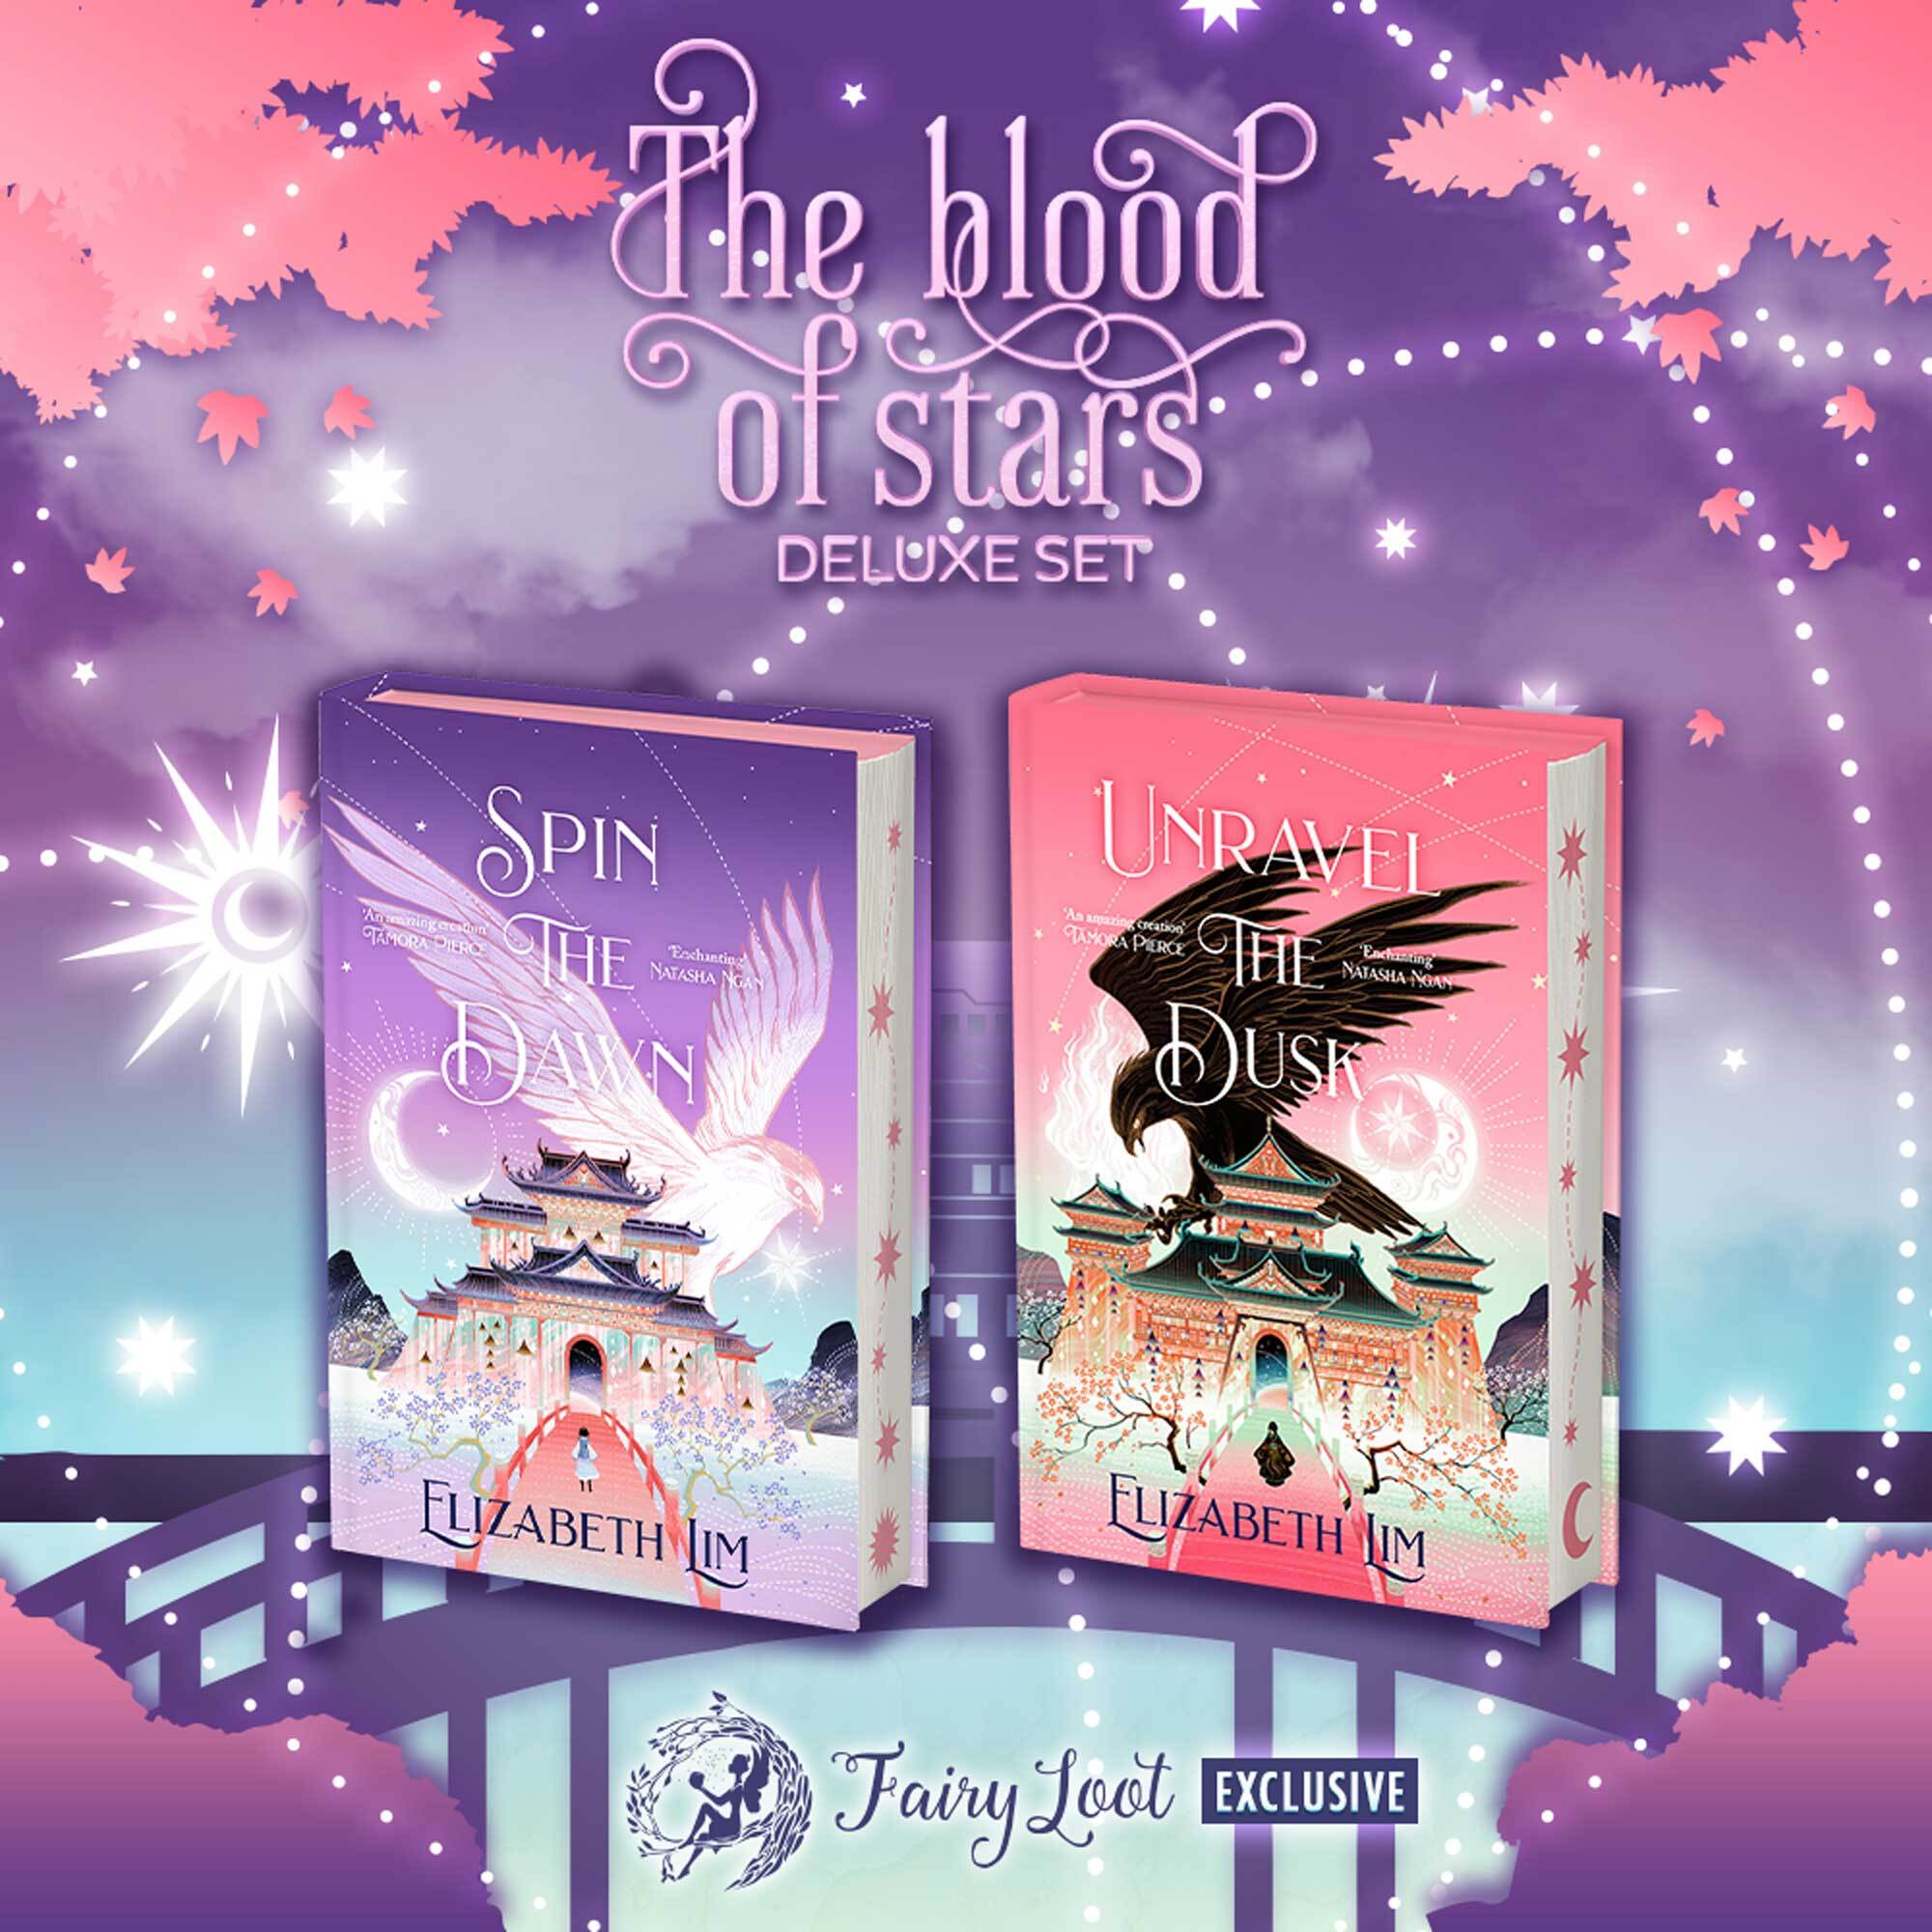 The Blood of Stars DELUXE SET